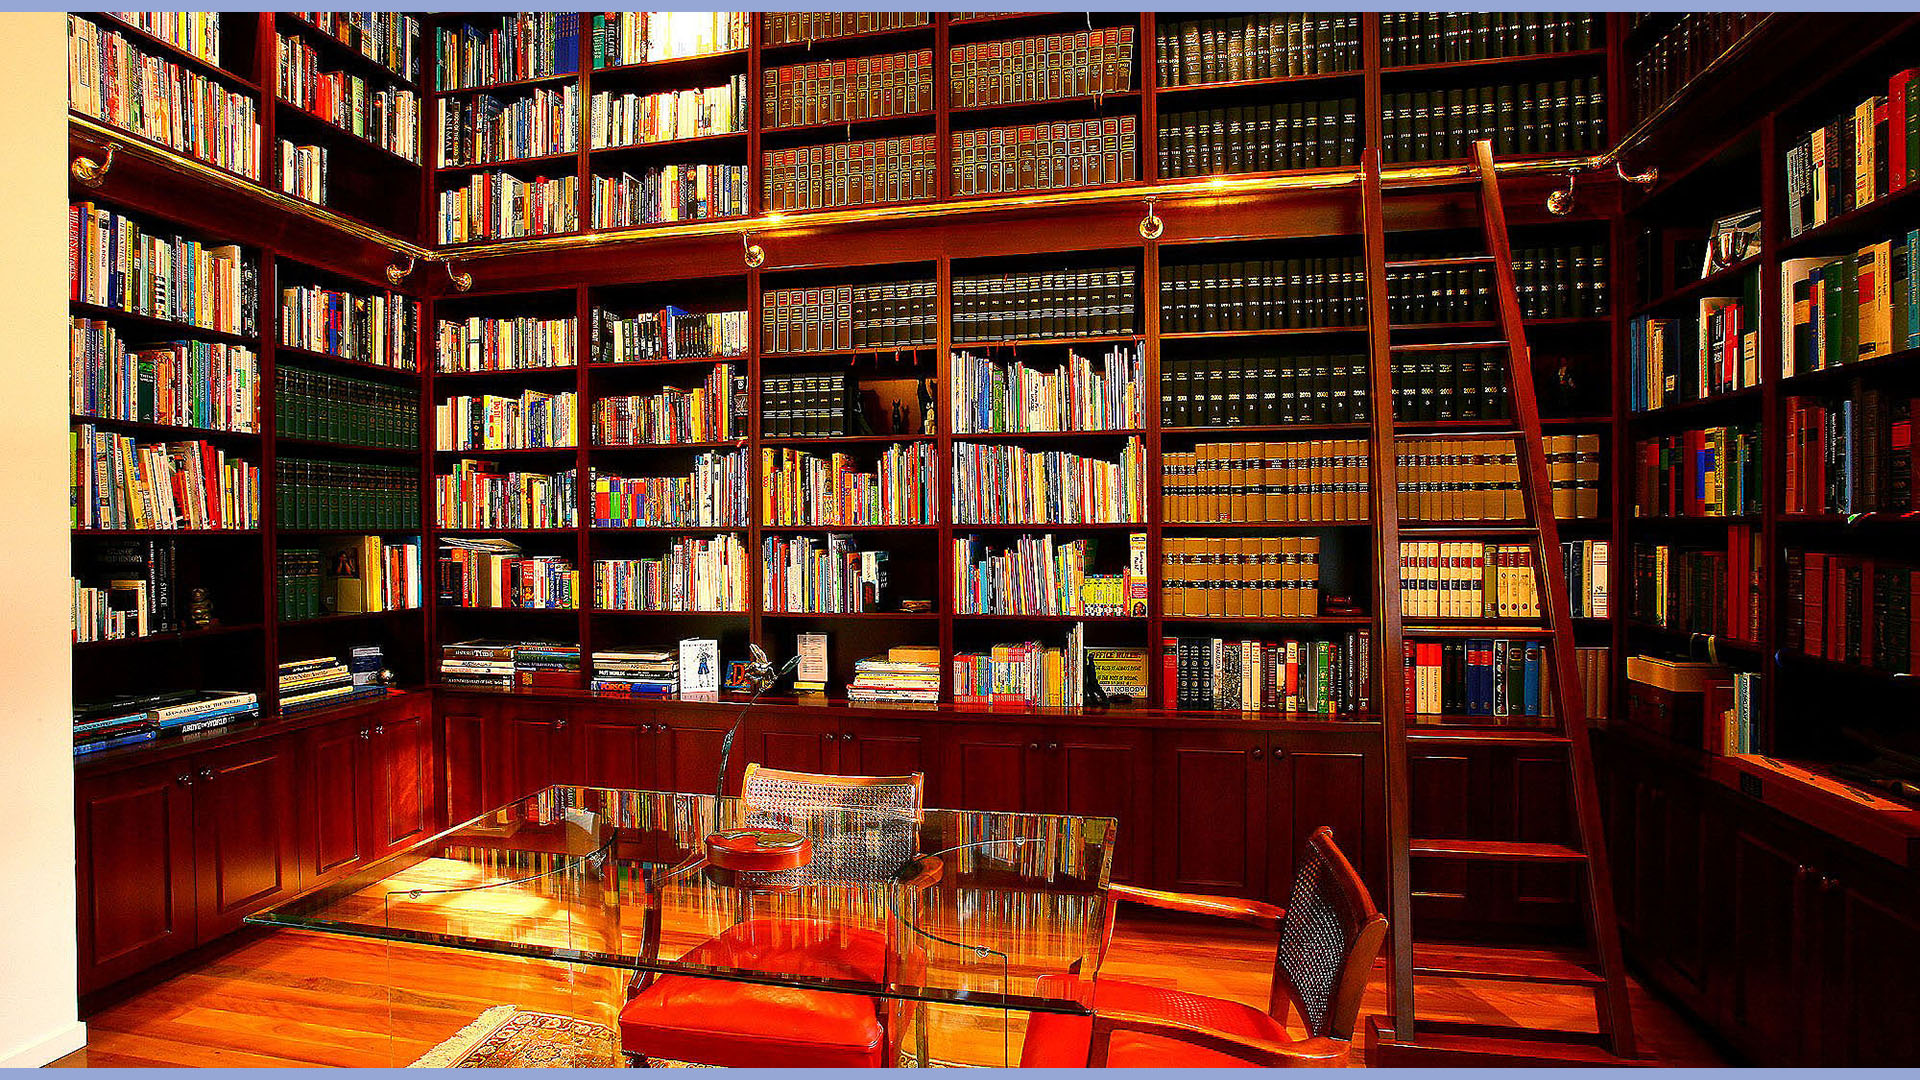 Instow - 004 - Library